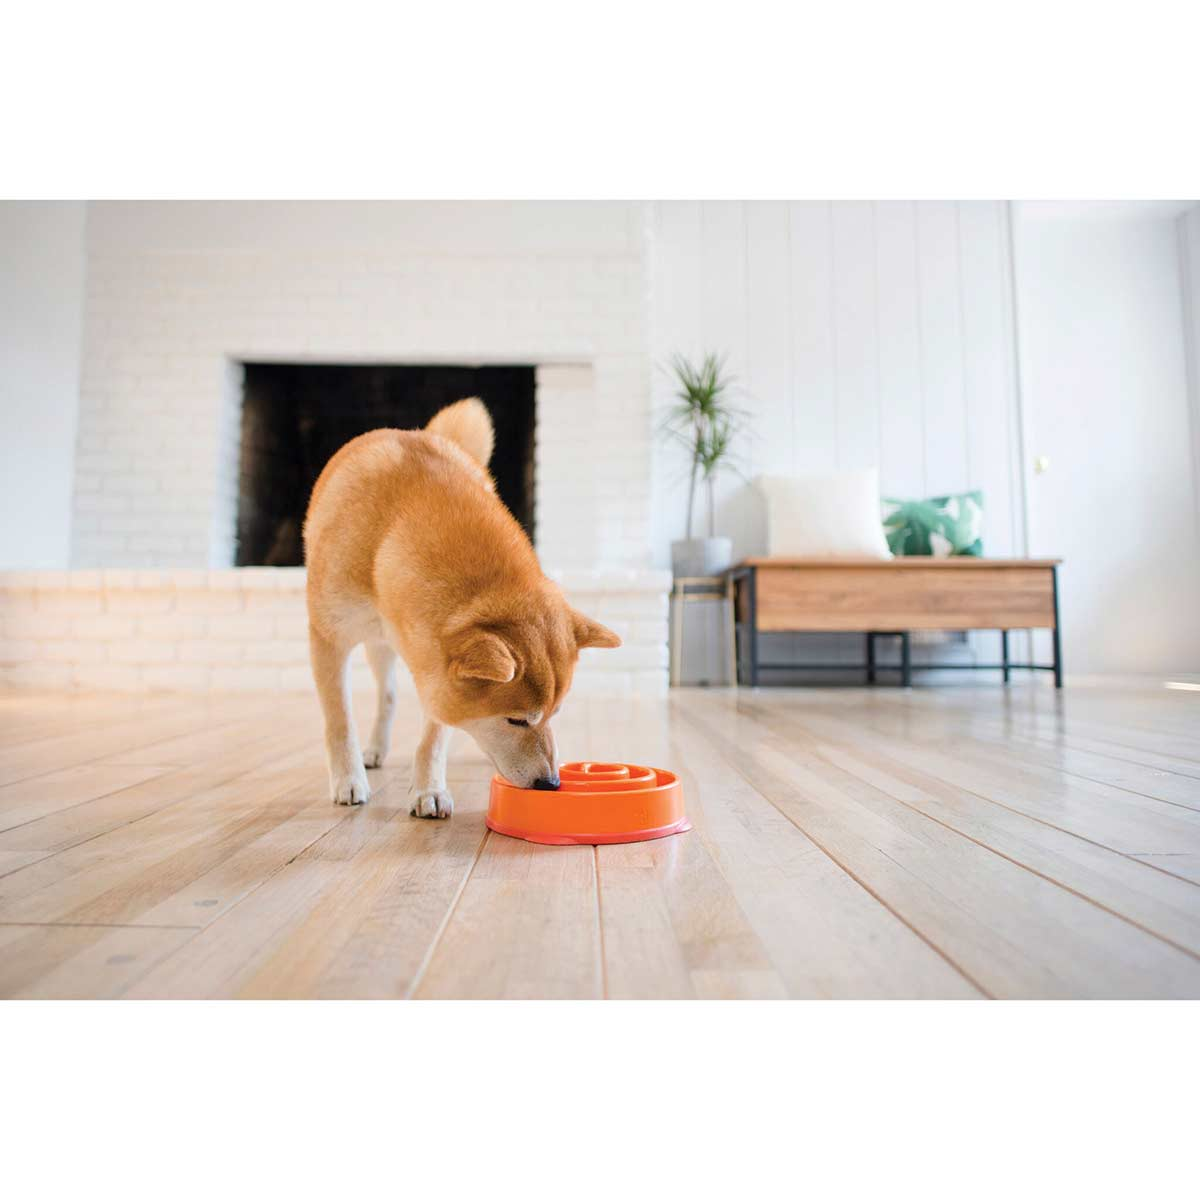 Dog using Outward Hound Slo-Bowl Coral Mini 9 inch